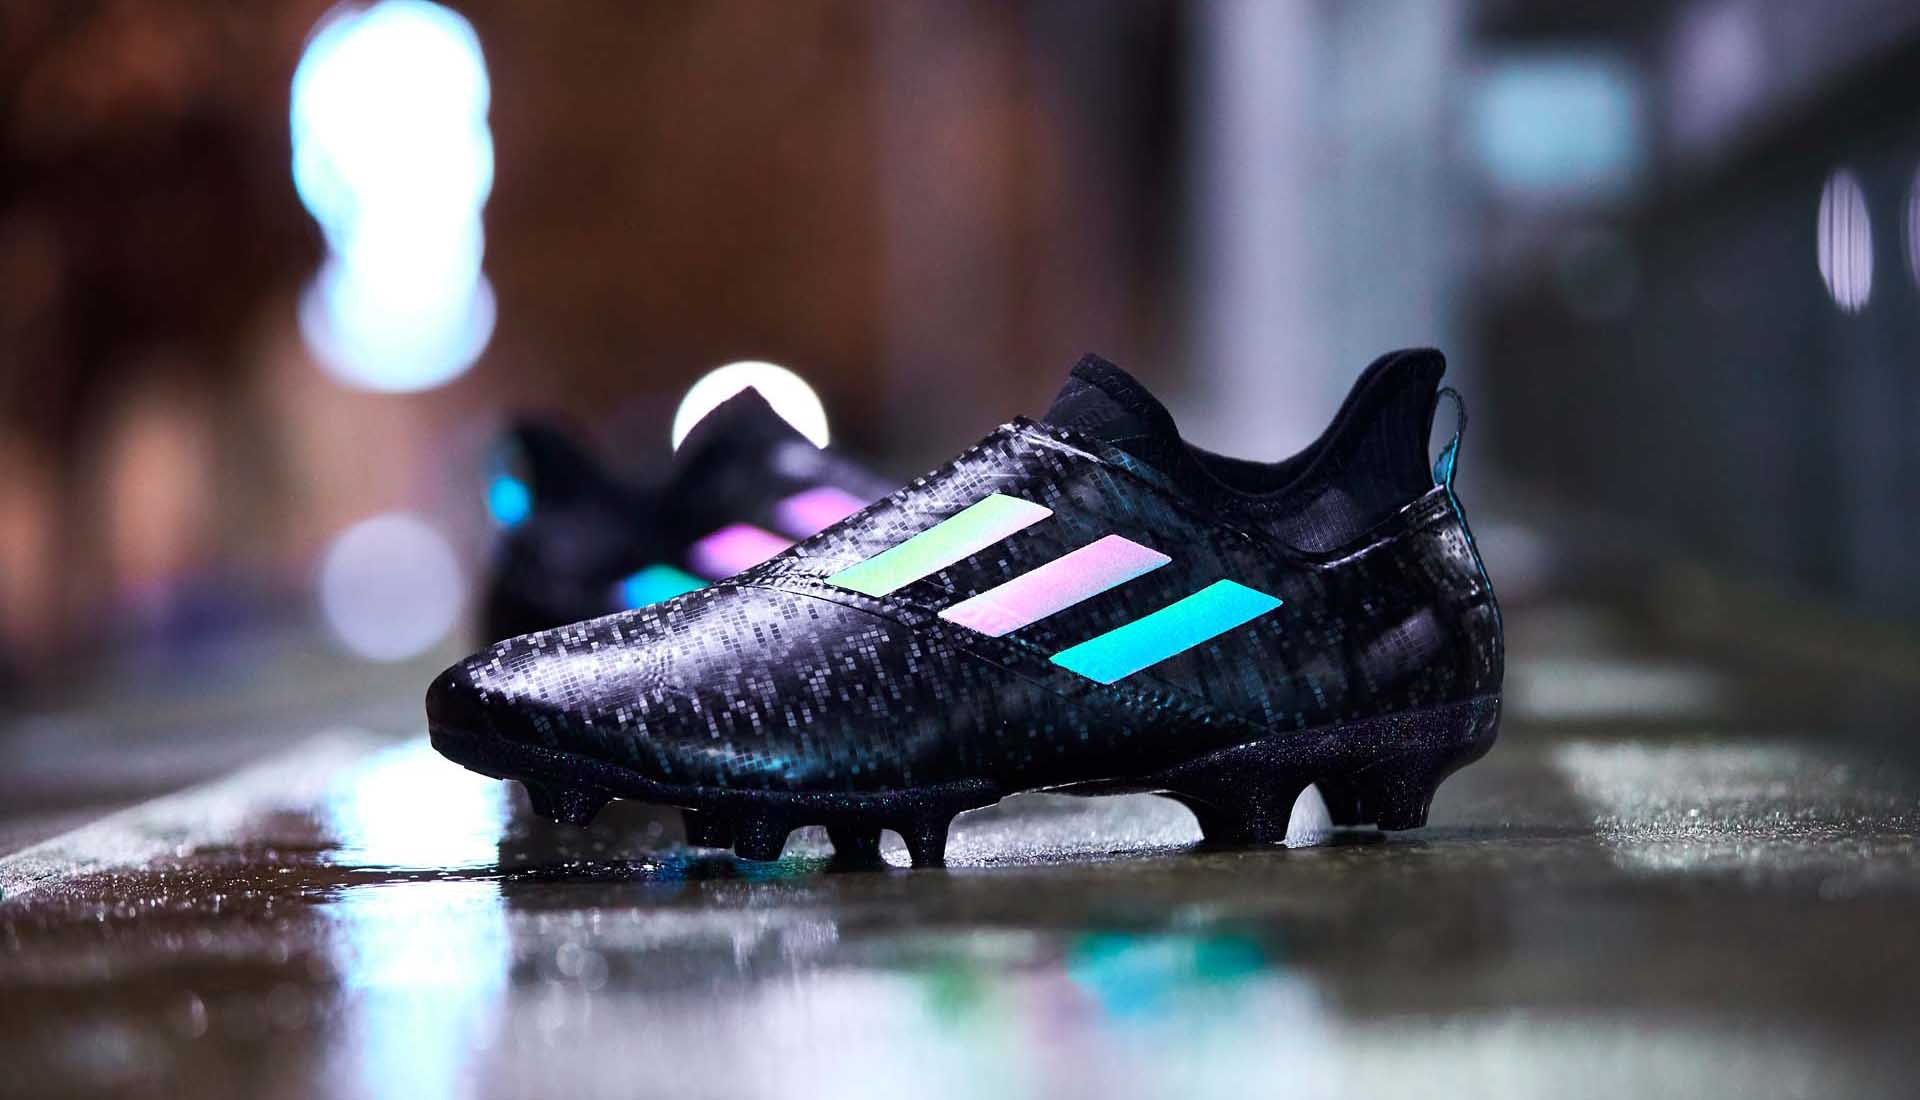 Our Top 20 adidas Glitch Skins - SoccerBible